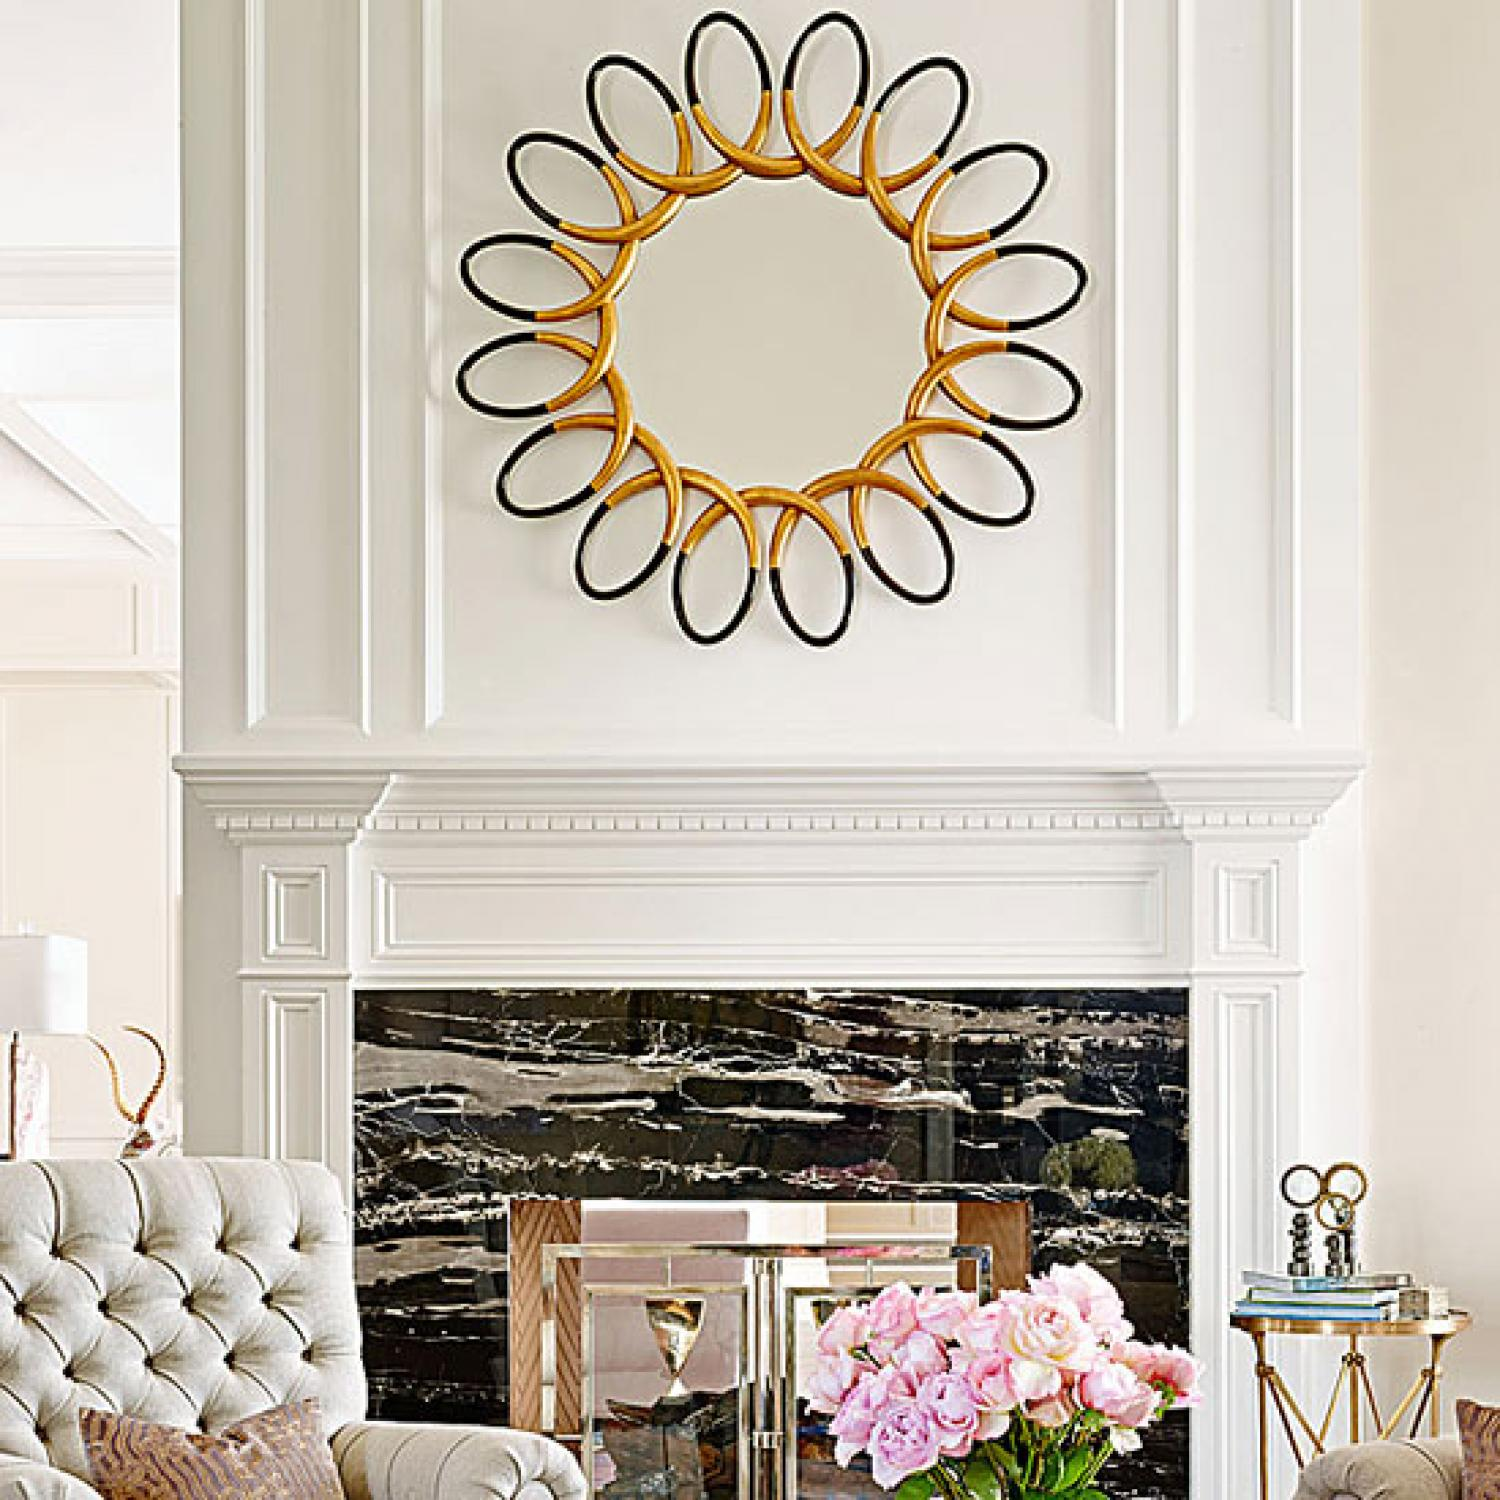 Modern And Sophisticated, Warm And Inviting